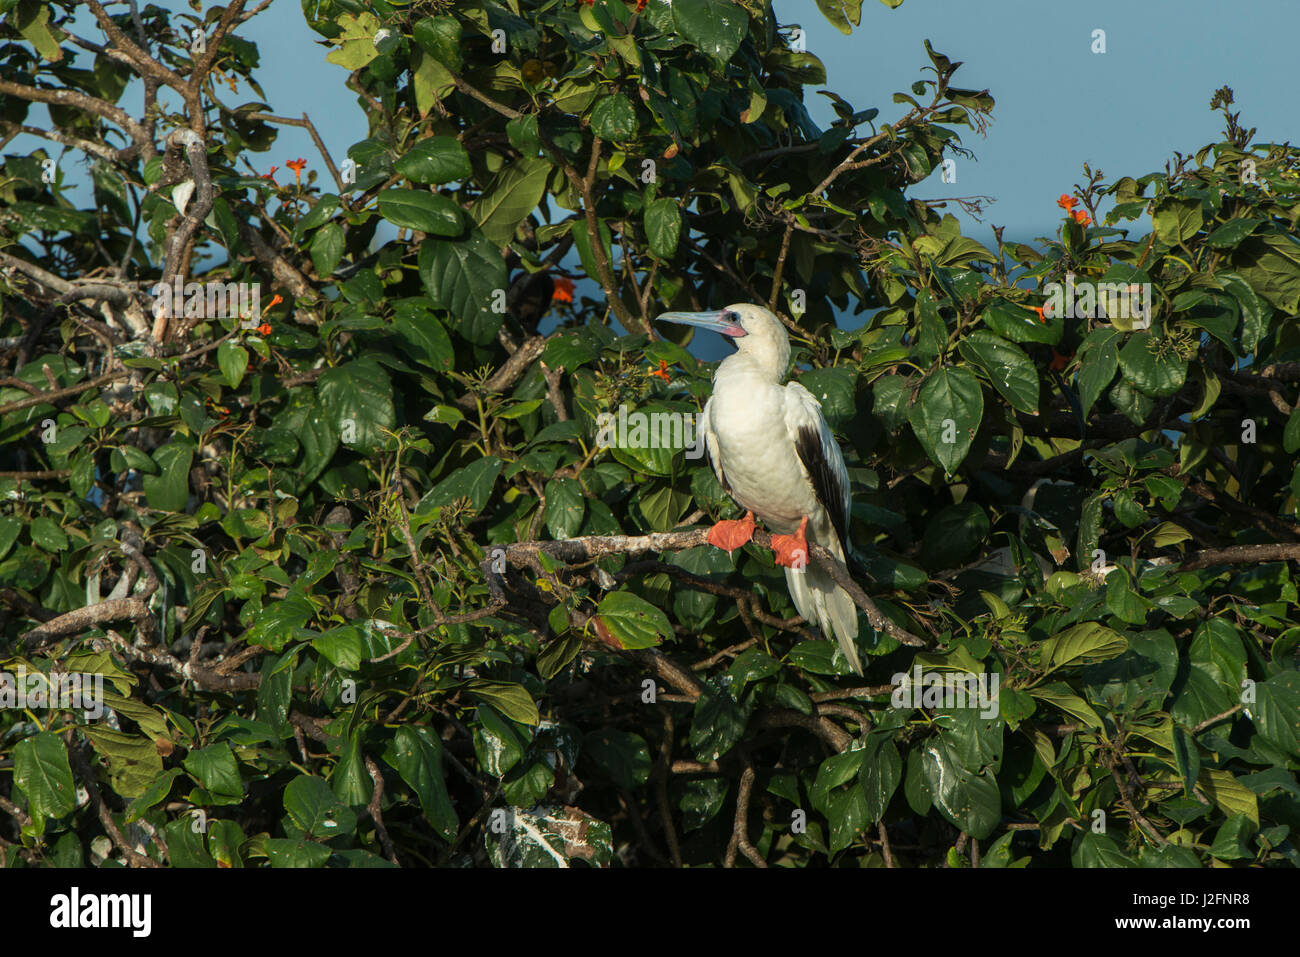 Red-footed Booby (Sula sula) white morphin Ziricote trees (Cordia dodecandra), Half Moon Caye colony, Lighthouse - Stock Image